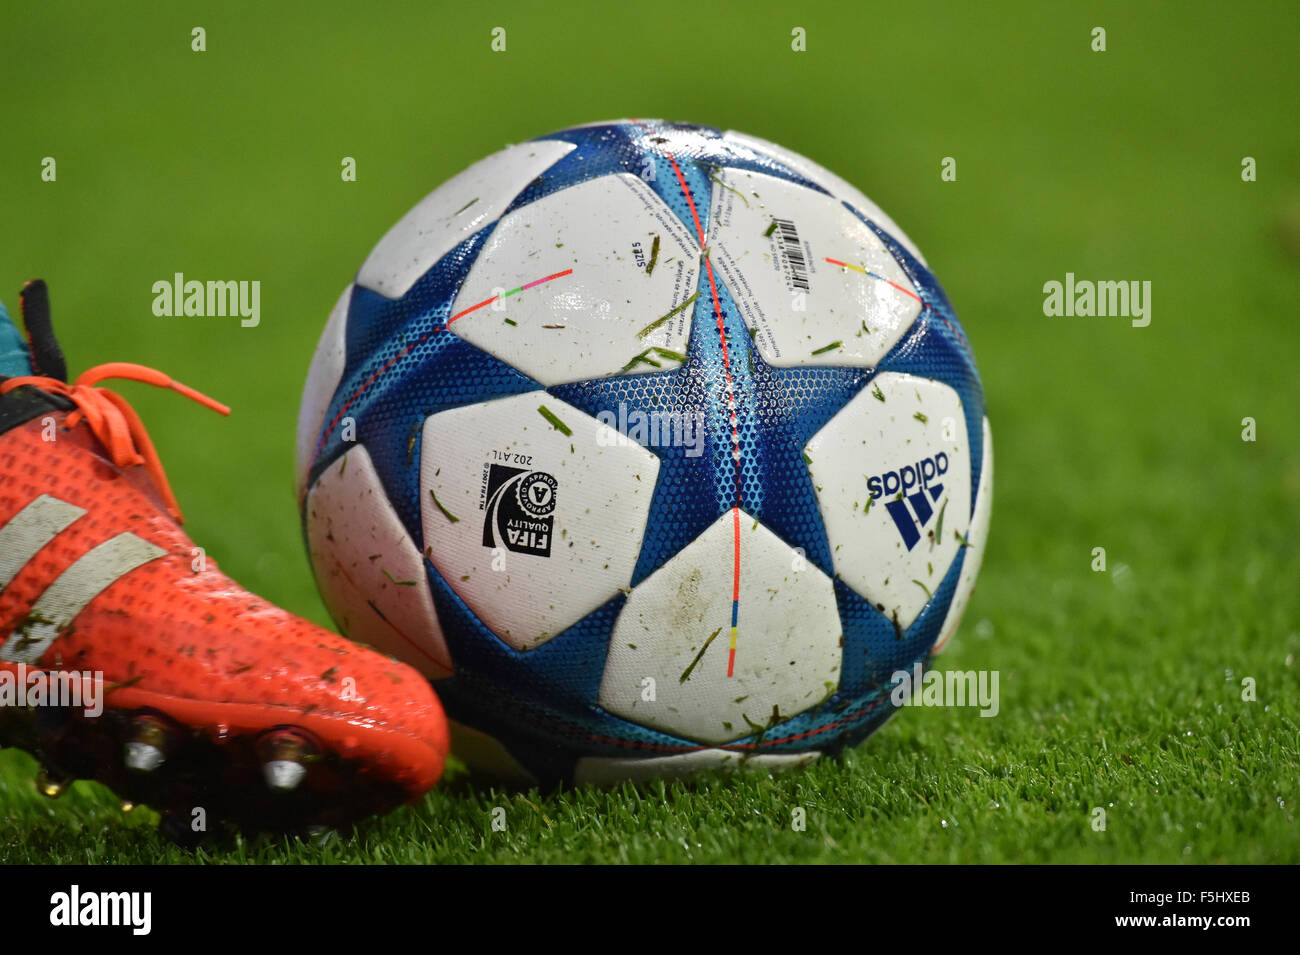 Adidas Champions League Ball In Stock Photos   Adidas Champions ... 76d462cec1077